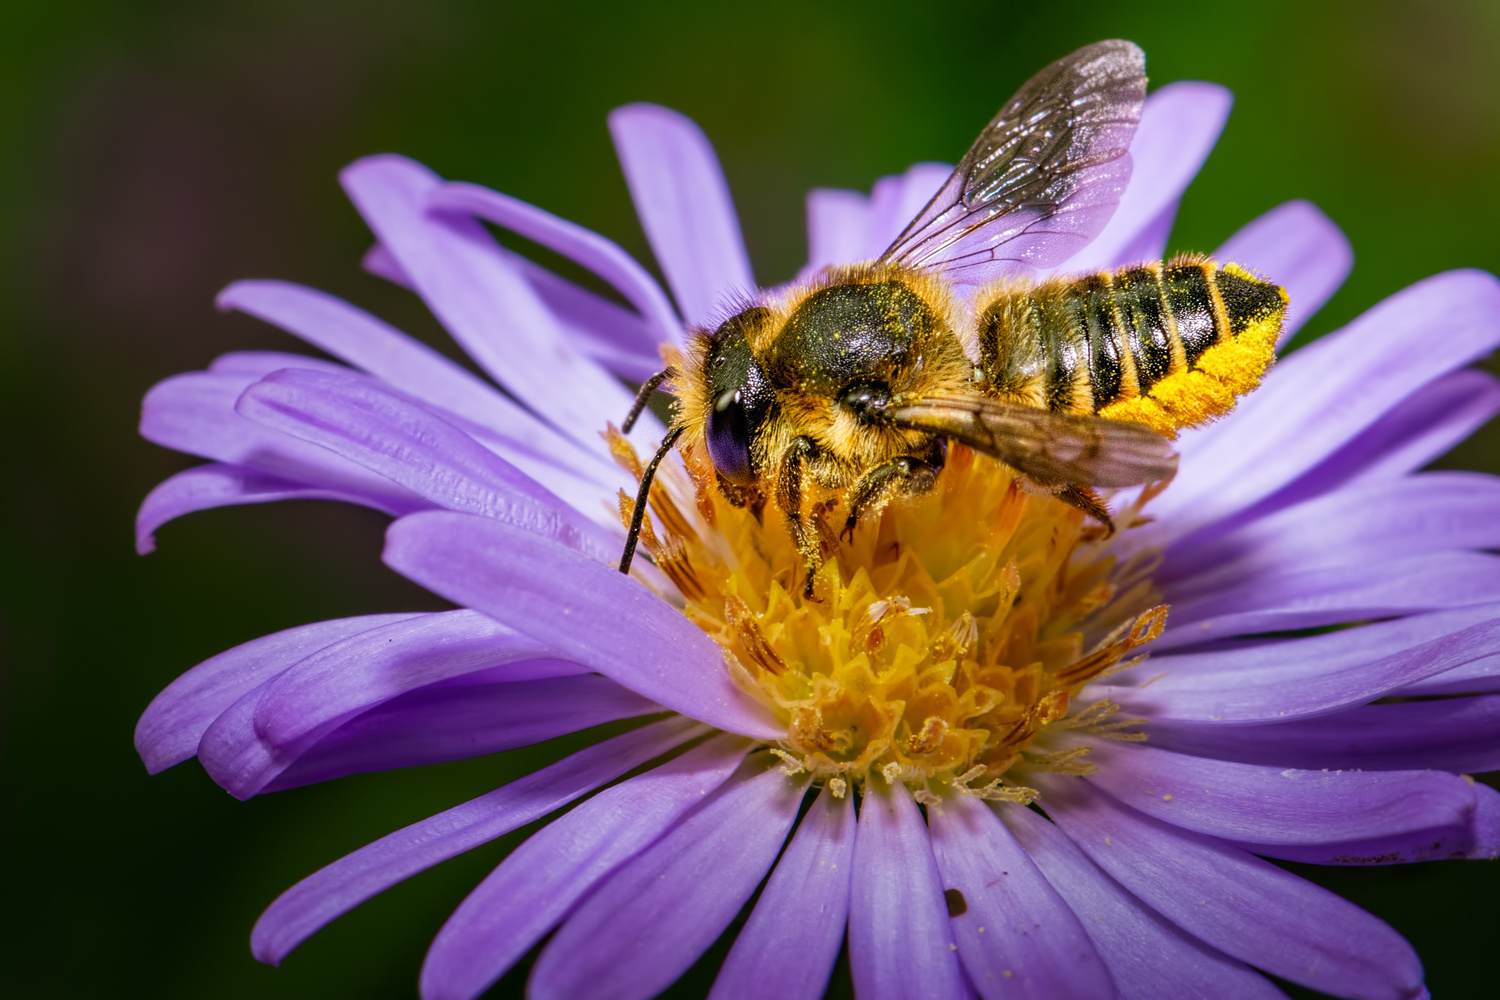 Leafcutter Bee by Jim Elve